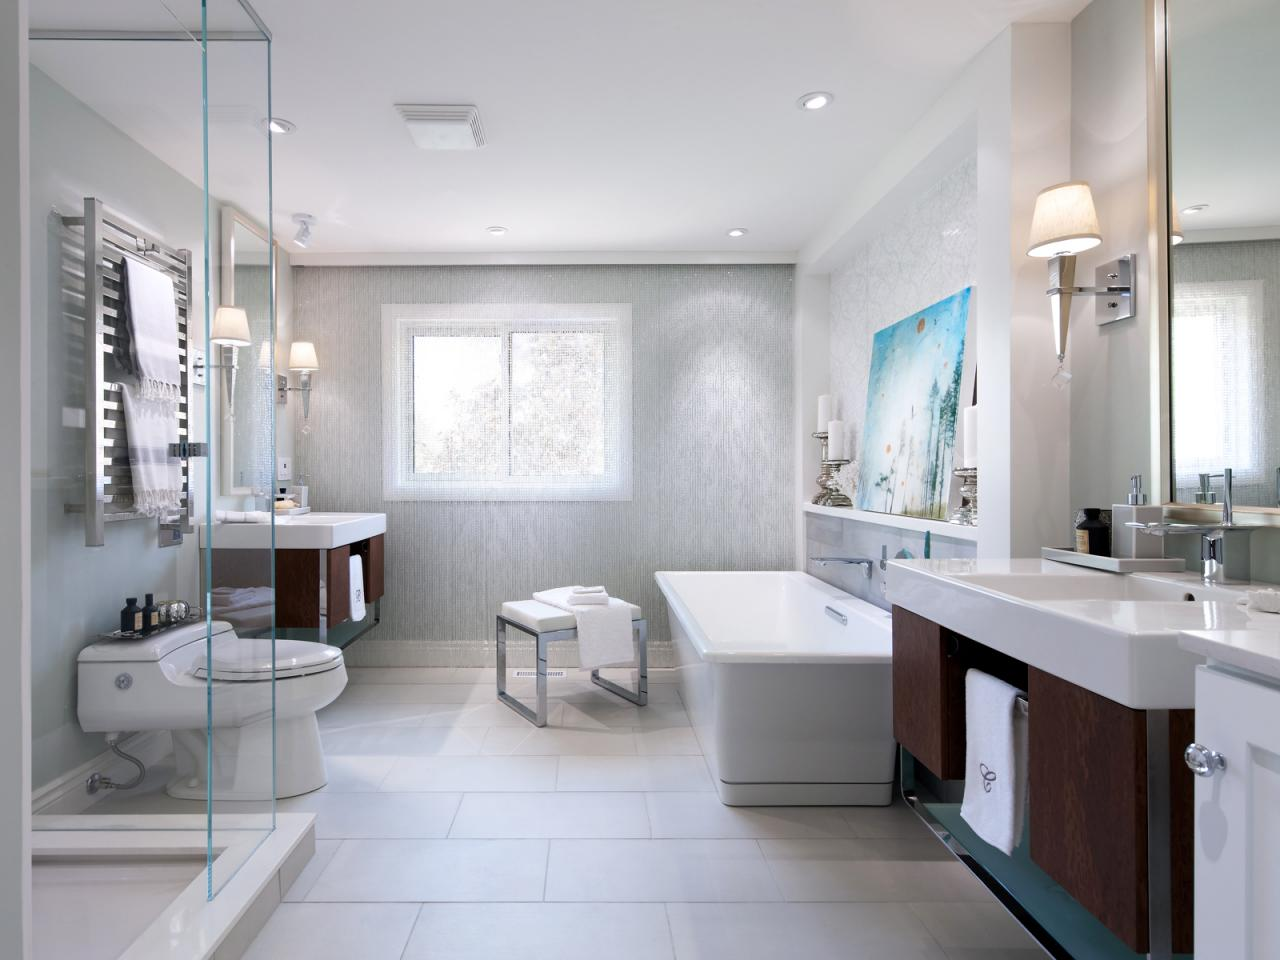 Bathroom Design Ideas And Tips: Walk-In Tub Designs: Pictures, Ideas & Tips From HGTV